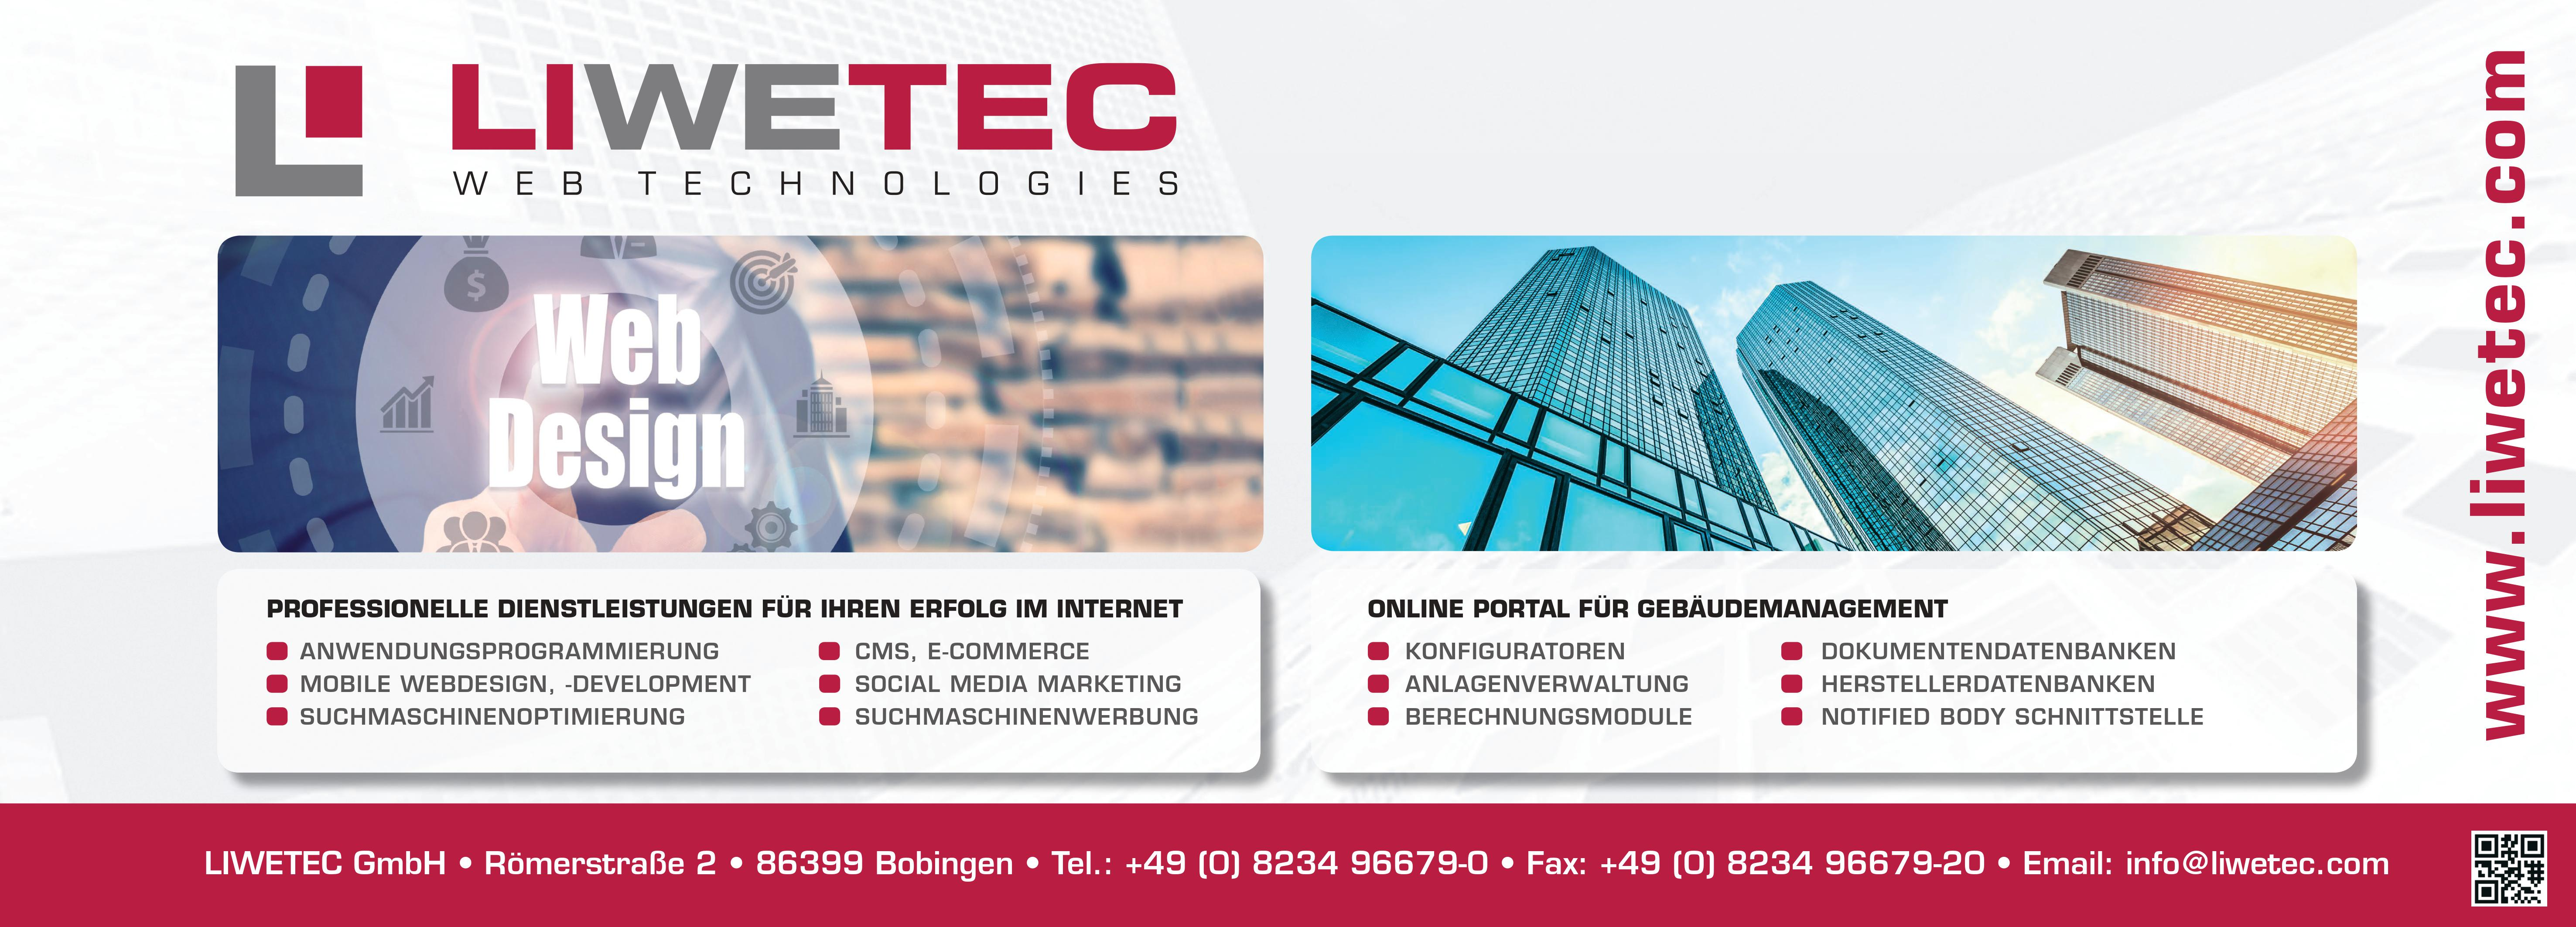 ad banner of LIWETEC GmbH with its services in webdesign and the elevatorportal